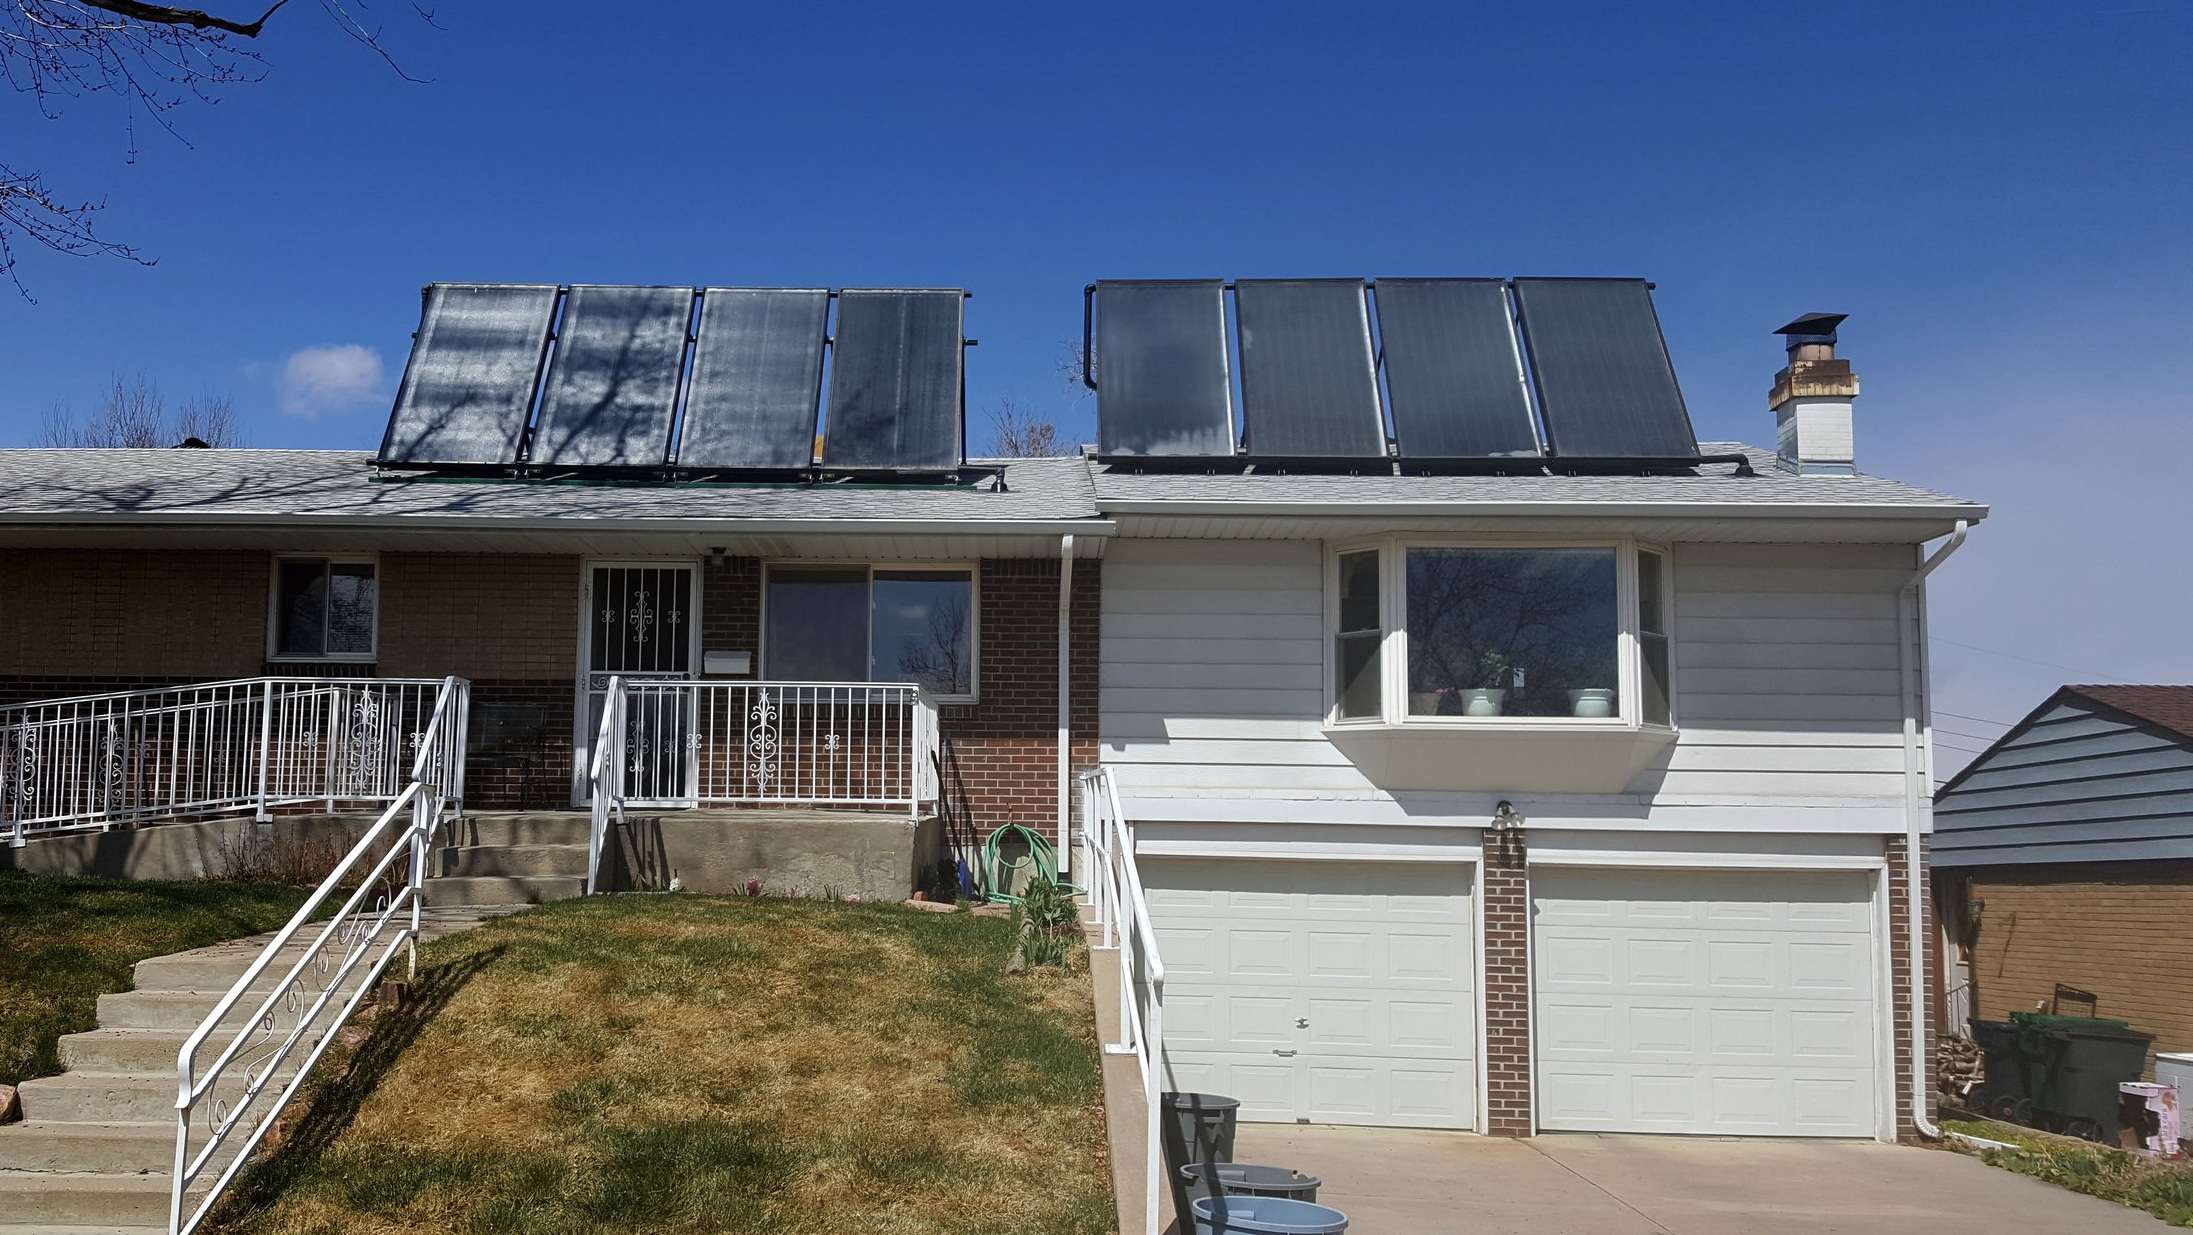 Aqua Care Solar servicing in Denver